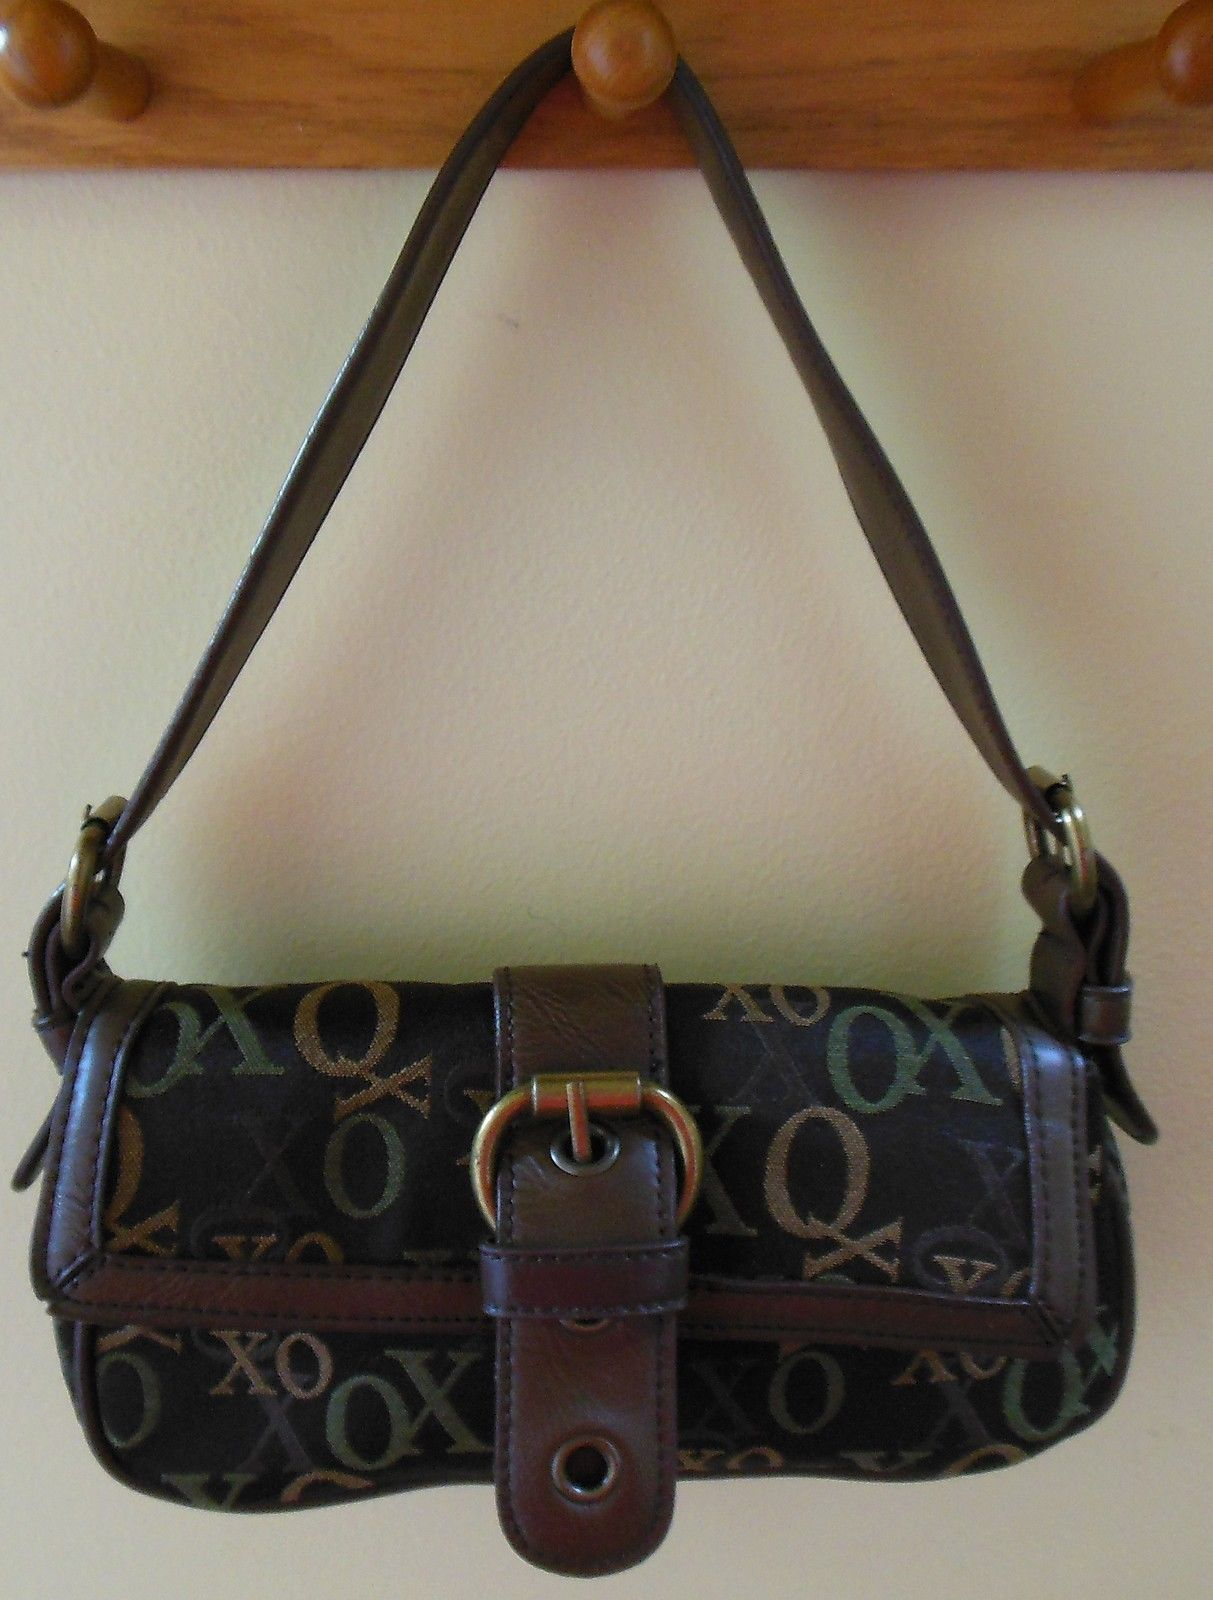 XOXO Brown Signature Handbag